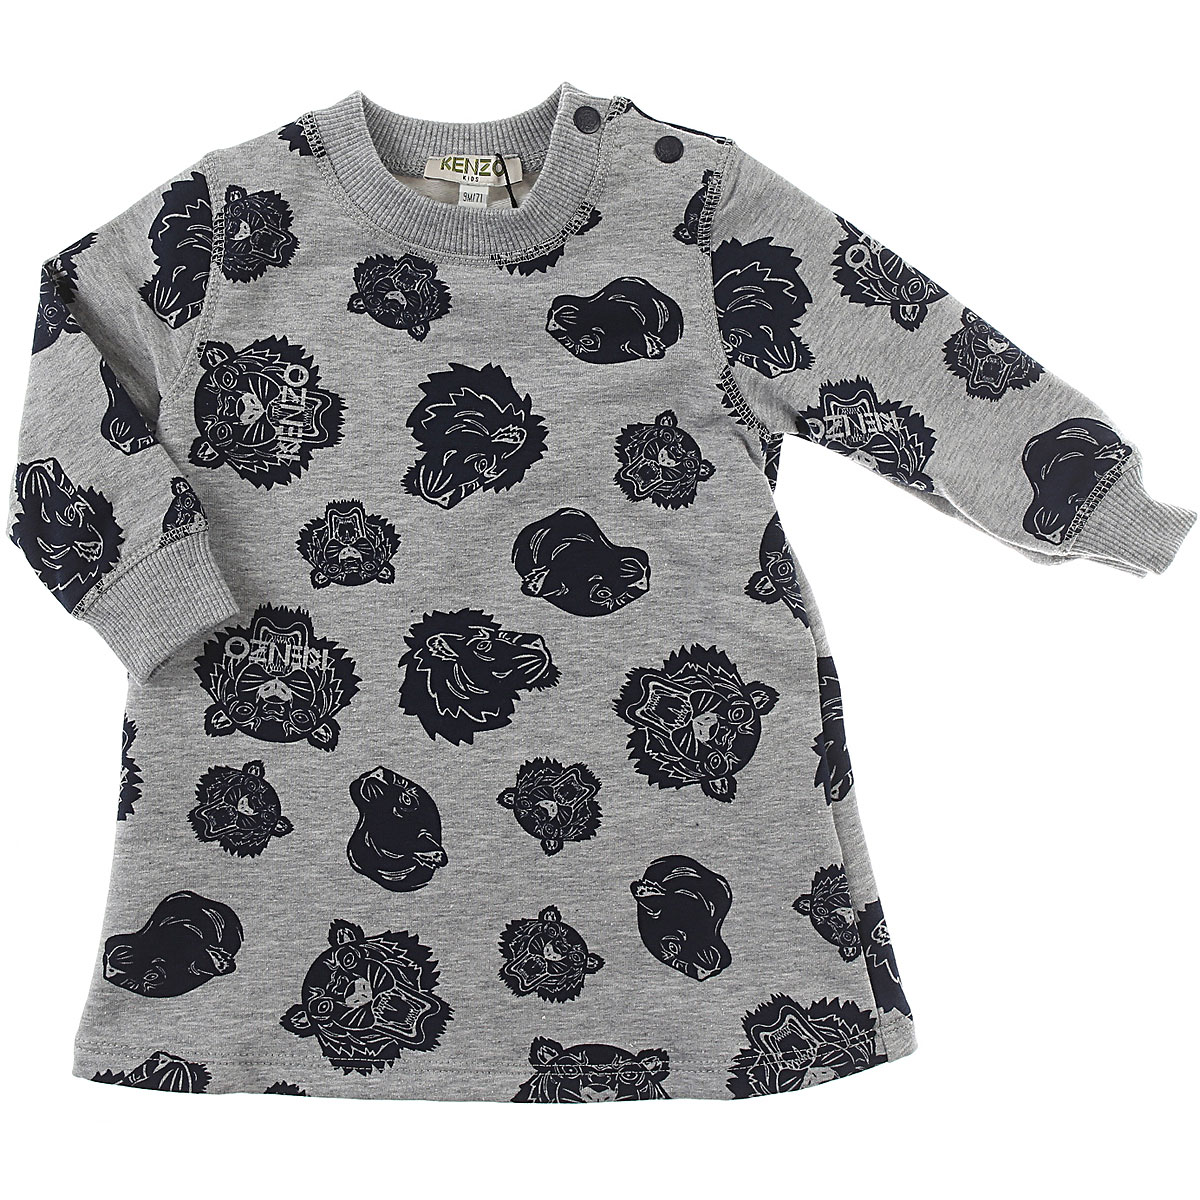 Image of Kenzo Baby Dress for Girls, Grey, Cotton, 2017, 12M 18M 2Y 6M 9M